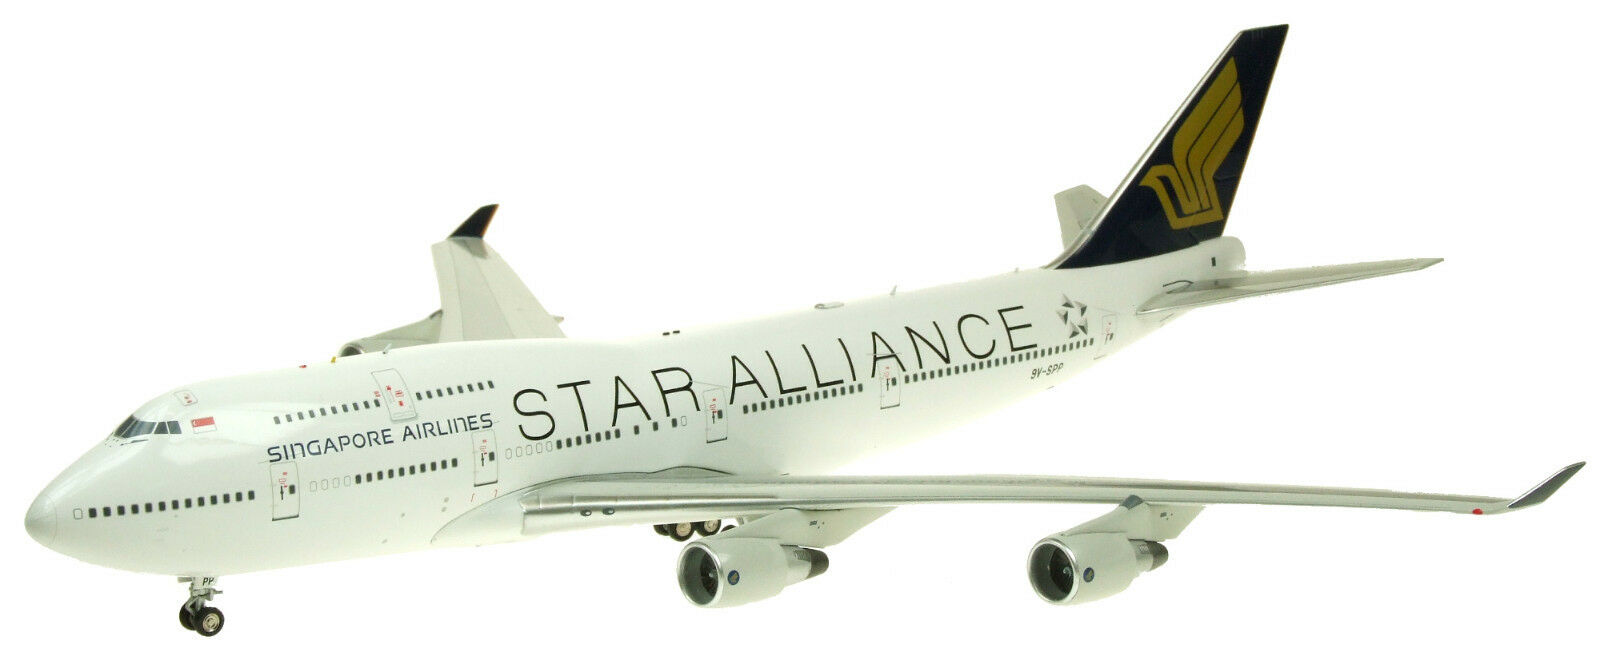 Jfox JF7474031 1 200 Singapore Airlines Star Alliance 747-412 9V-SPP con supporto